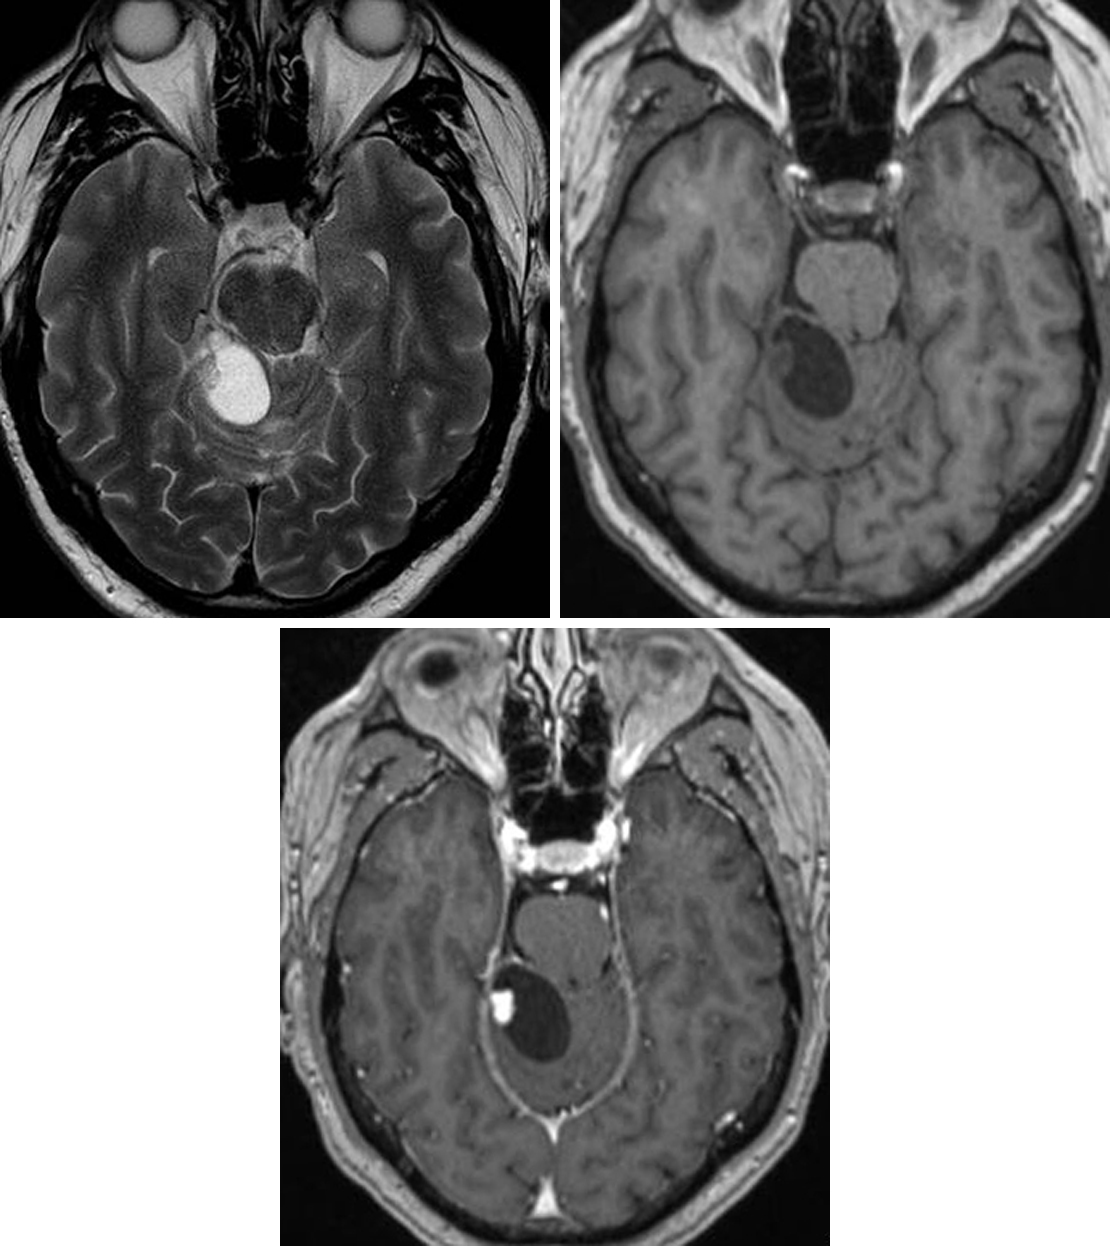 Figure 1: (Top Left) The cystic appearance is typical of this HGBL on T2WI. Note the posterior fossa location. The mural nodule is visible on T1WI but becomes much more evident after administration of intravenous contrast (bottom) due to its avid enhancement. The lack of enhancement in the cystic rim is also typical.